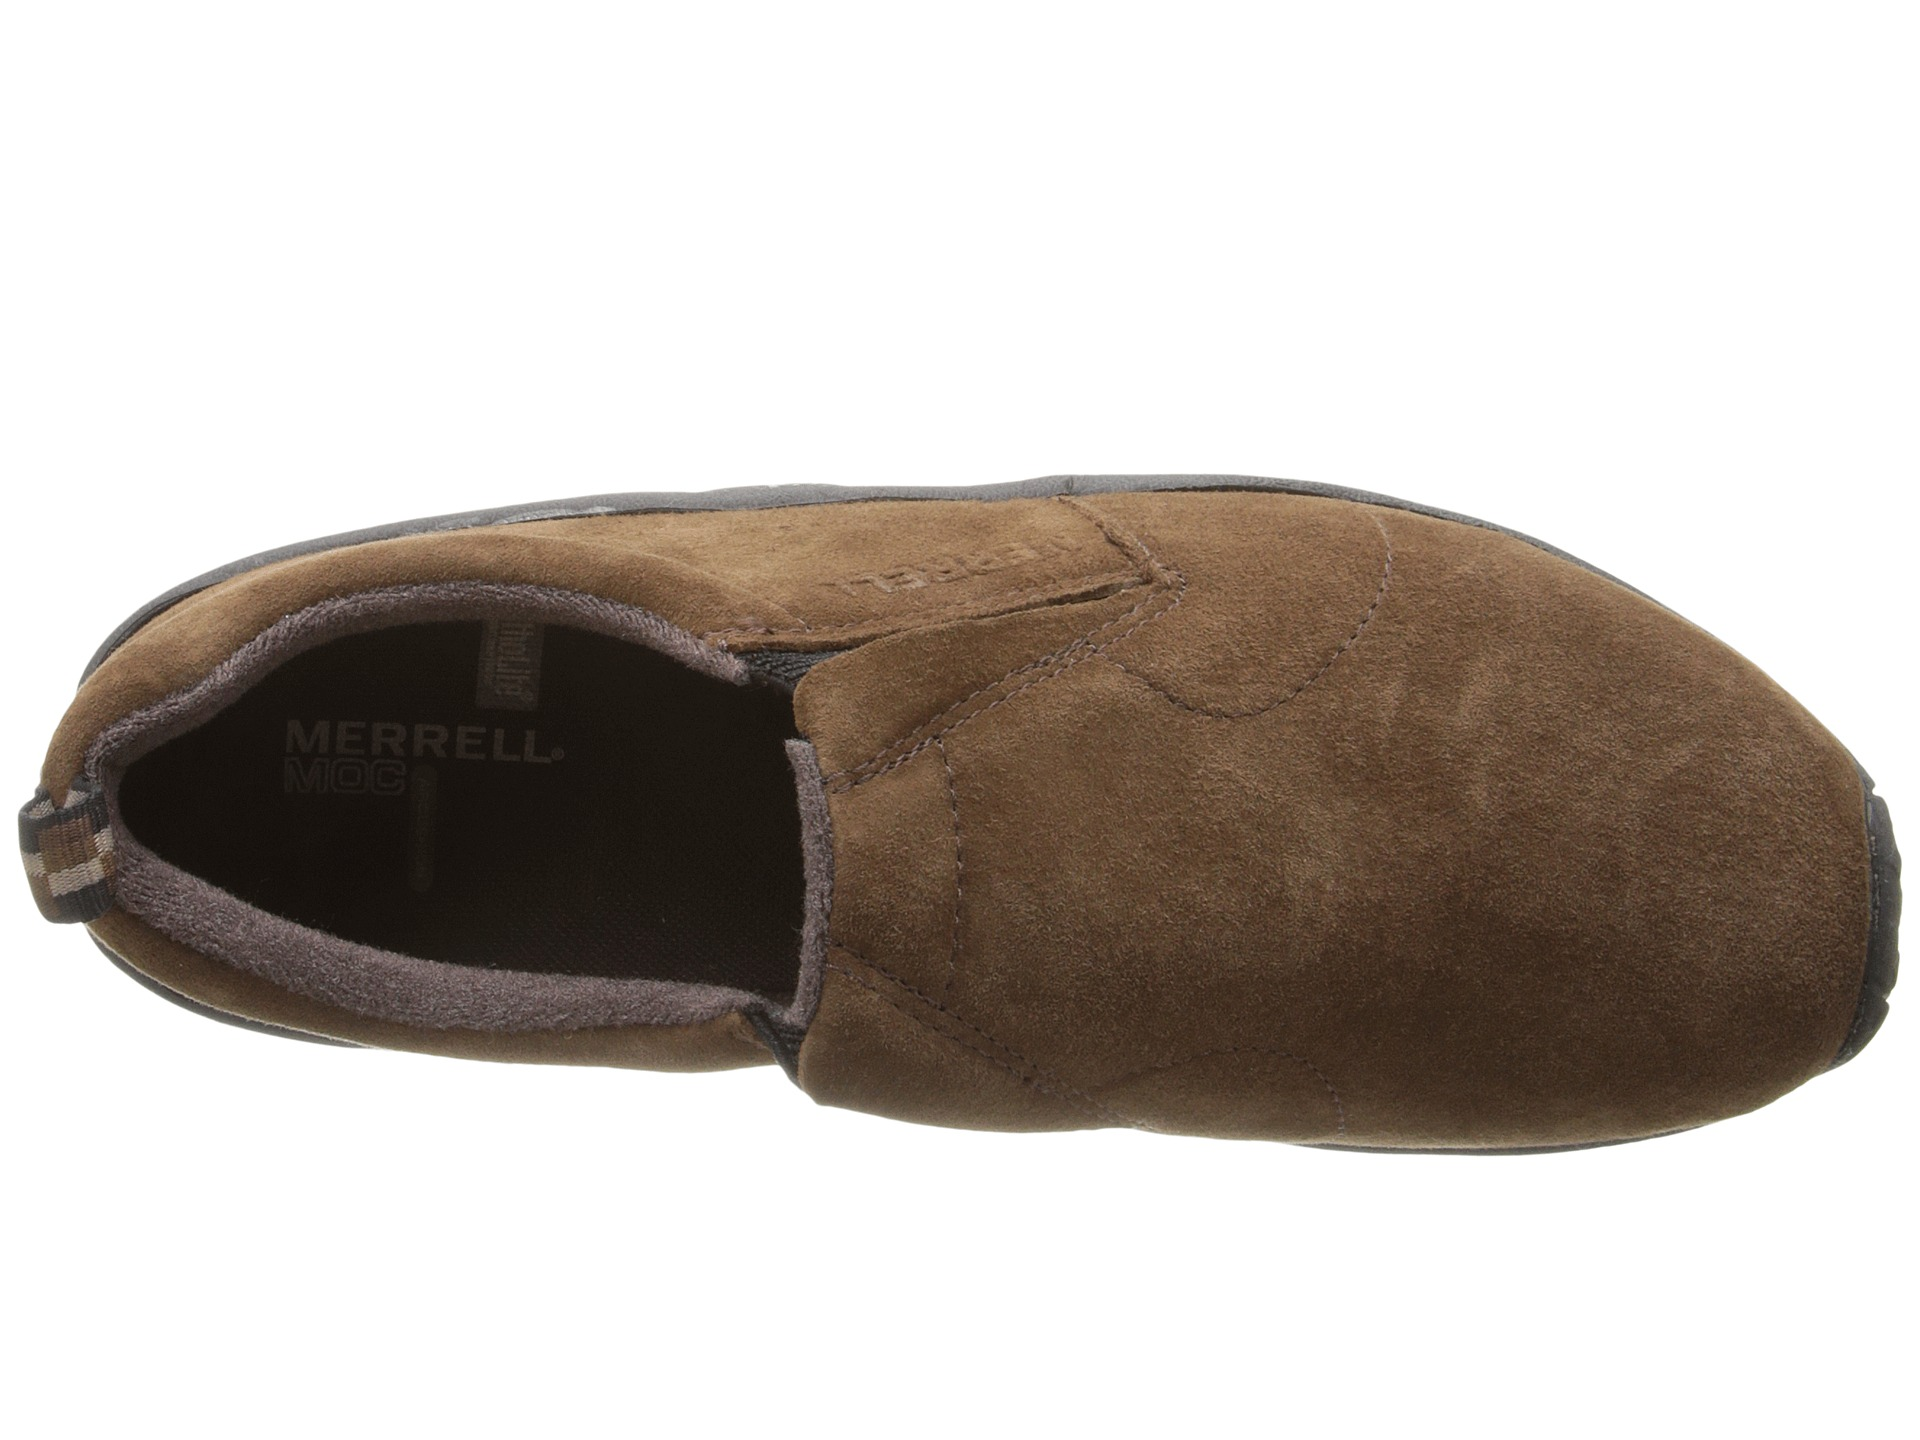 how to fix suede shoes from water damage